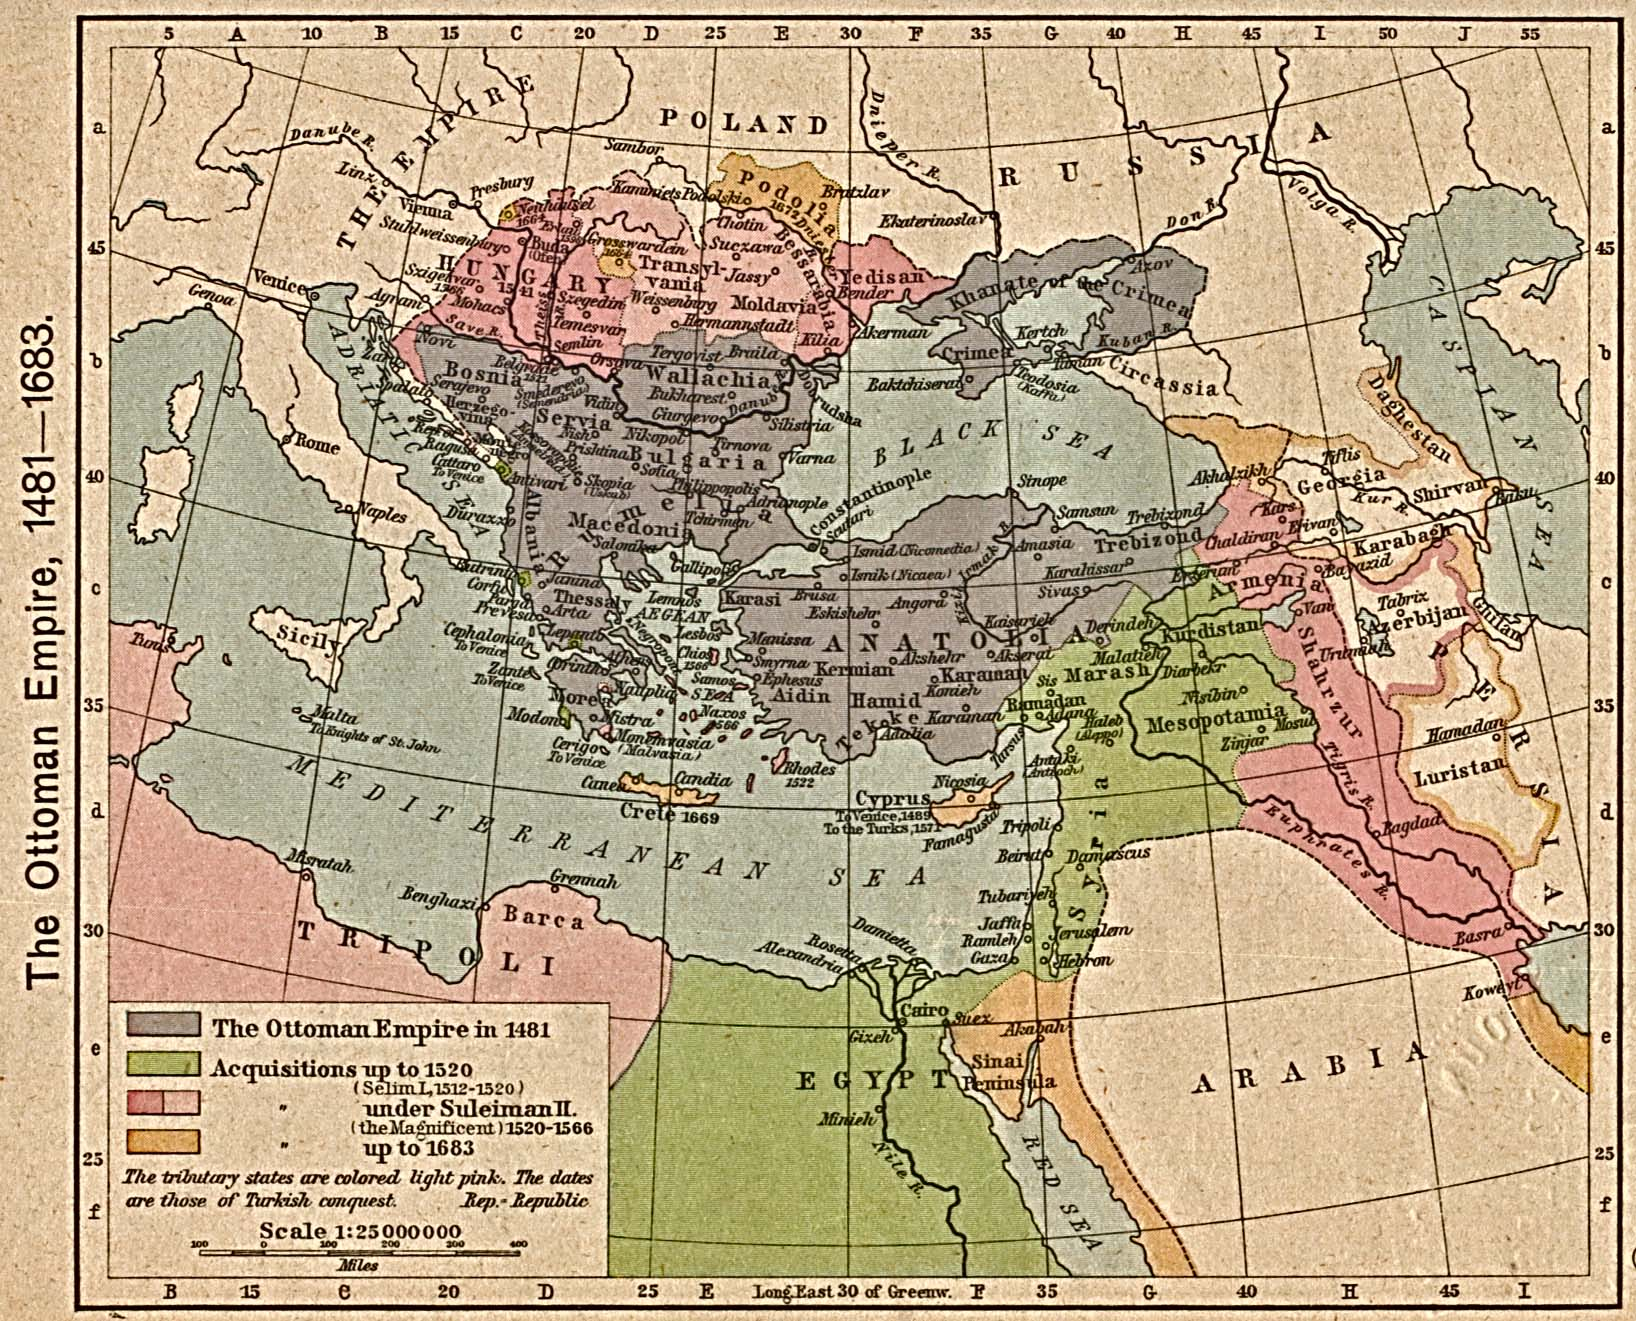 The Ottoman Empire at the height of its expansion (1481-1683). The Historical Atlas by William R. Shepherd, 1923. (Perry-Castañeda Library Map Collection).